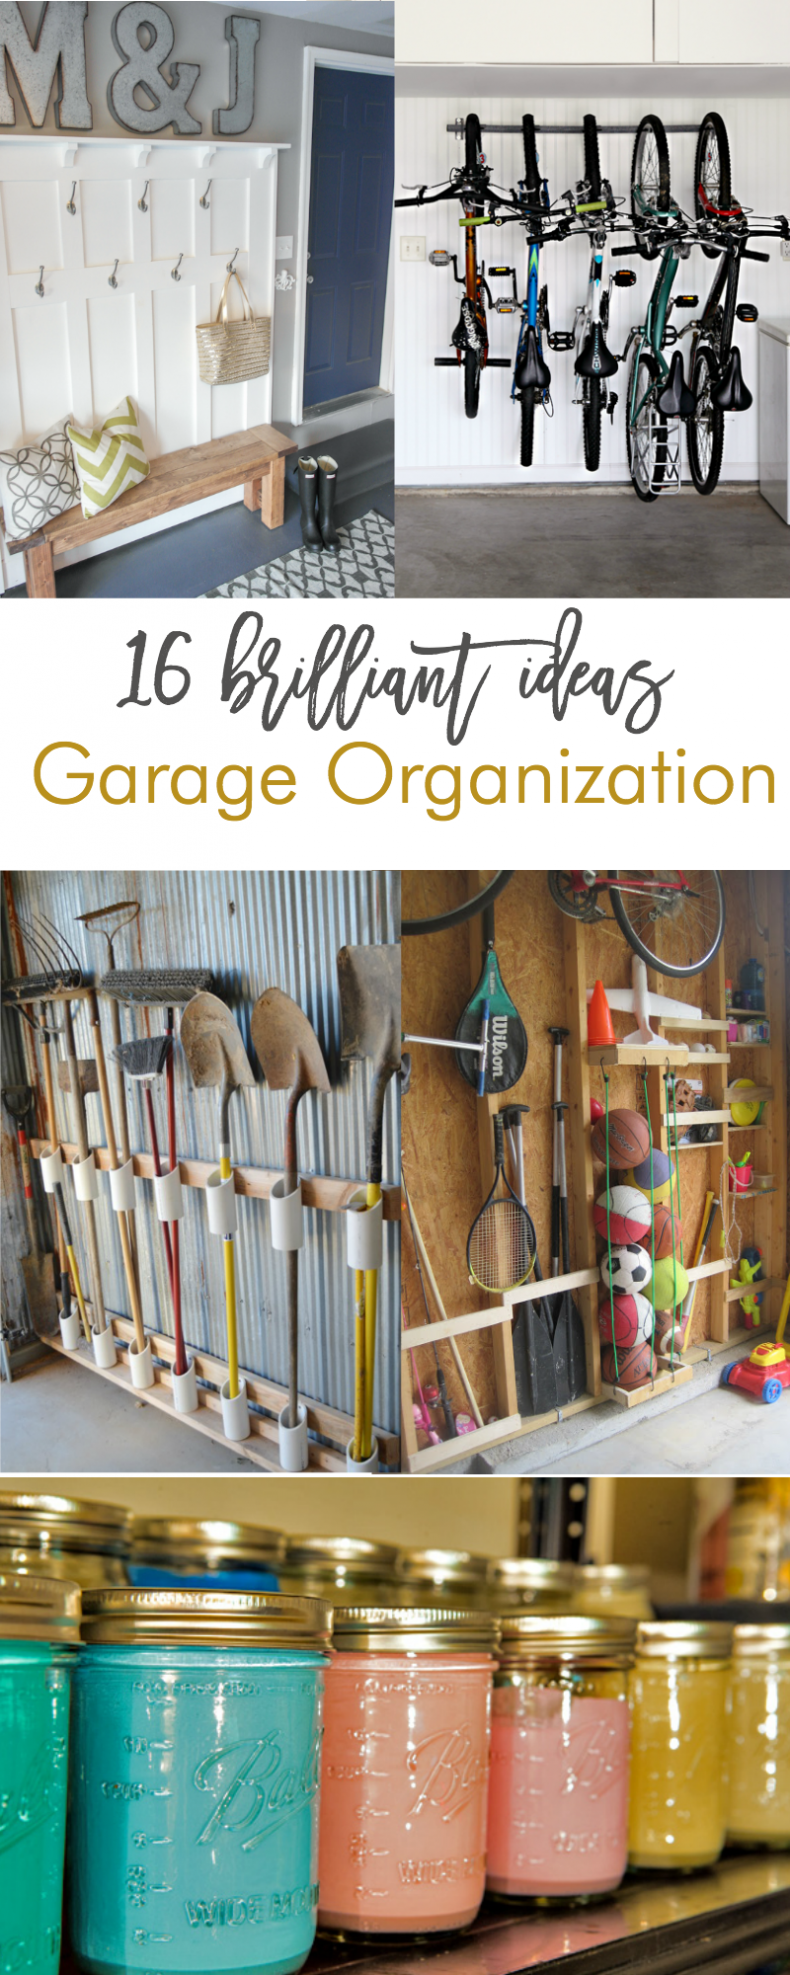 garage organization ideas - 16 Brilliant DIY Garage Organization Ideas